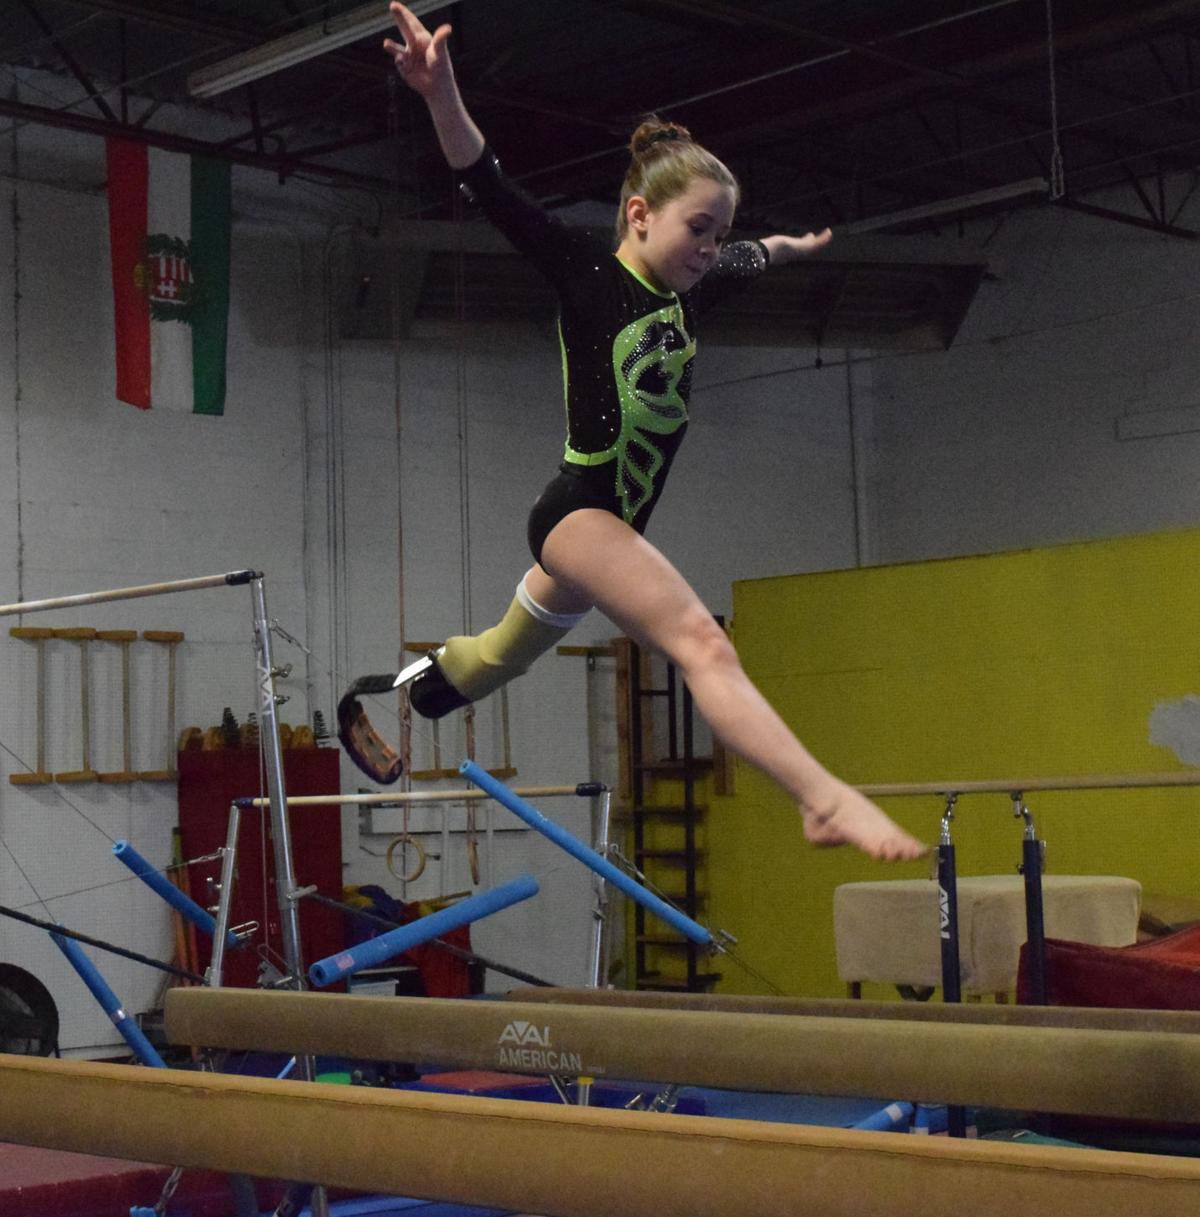 Zoe Smith, 10, performs on the balance beam. Zoe competes with a prosthetic left leg due to her left foot being amputated at age one.